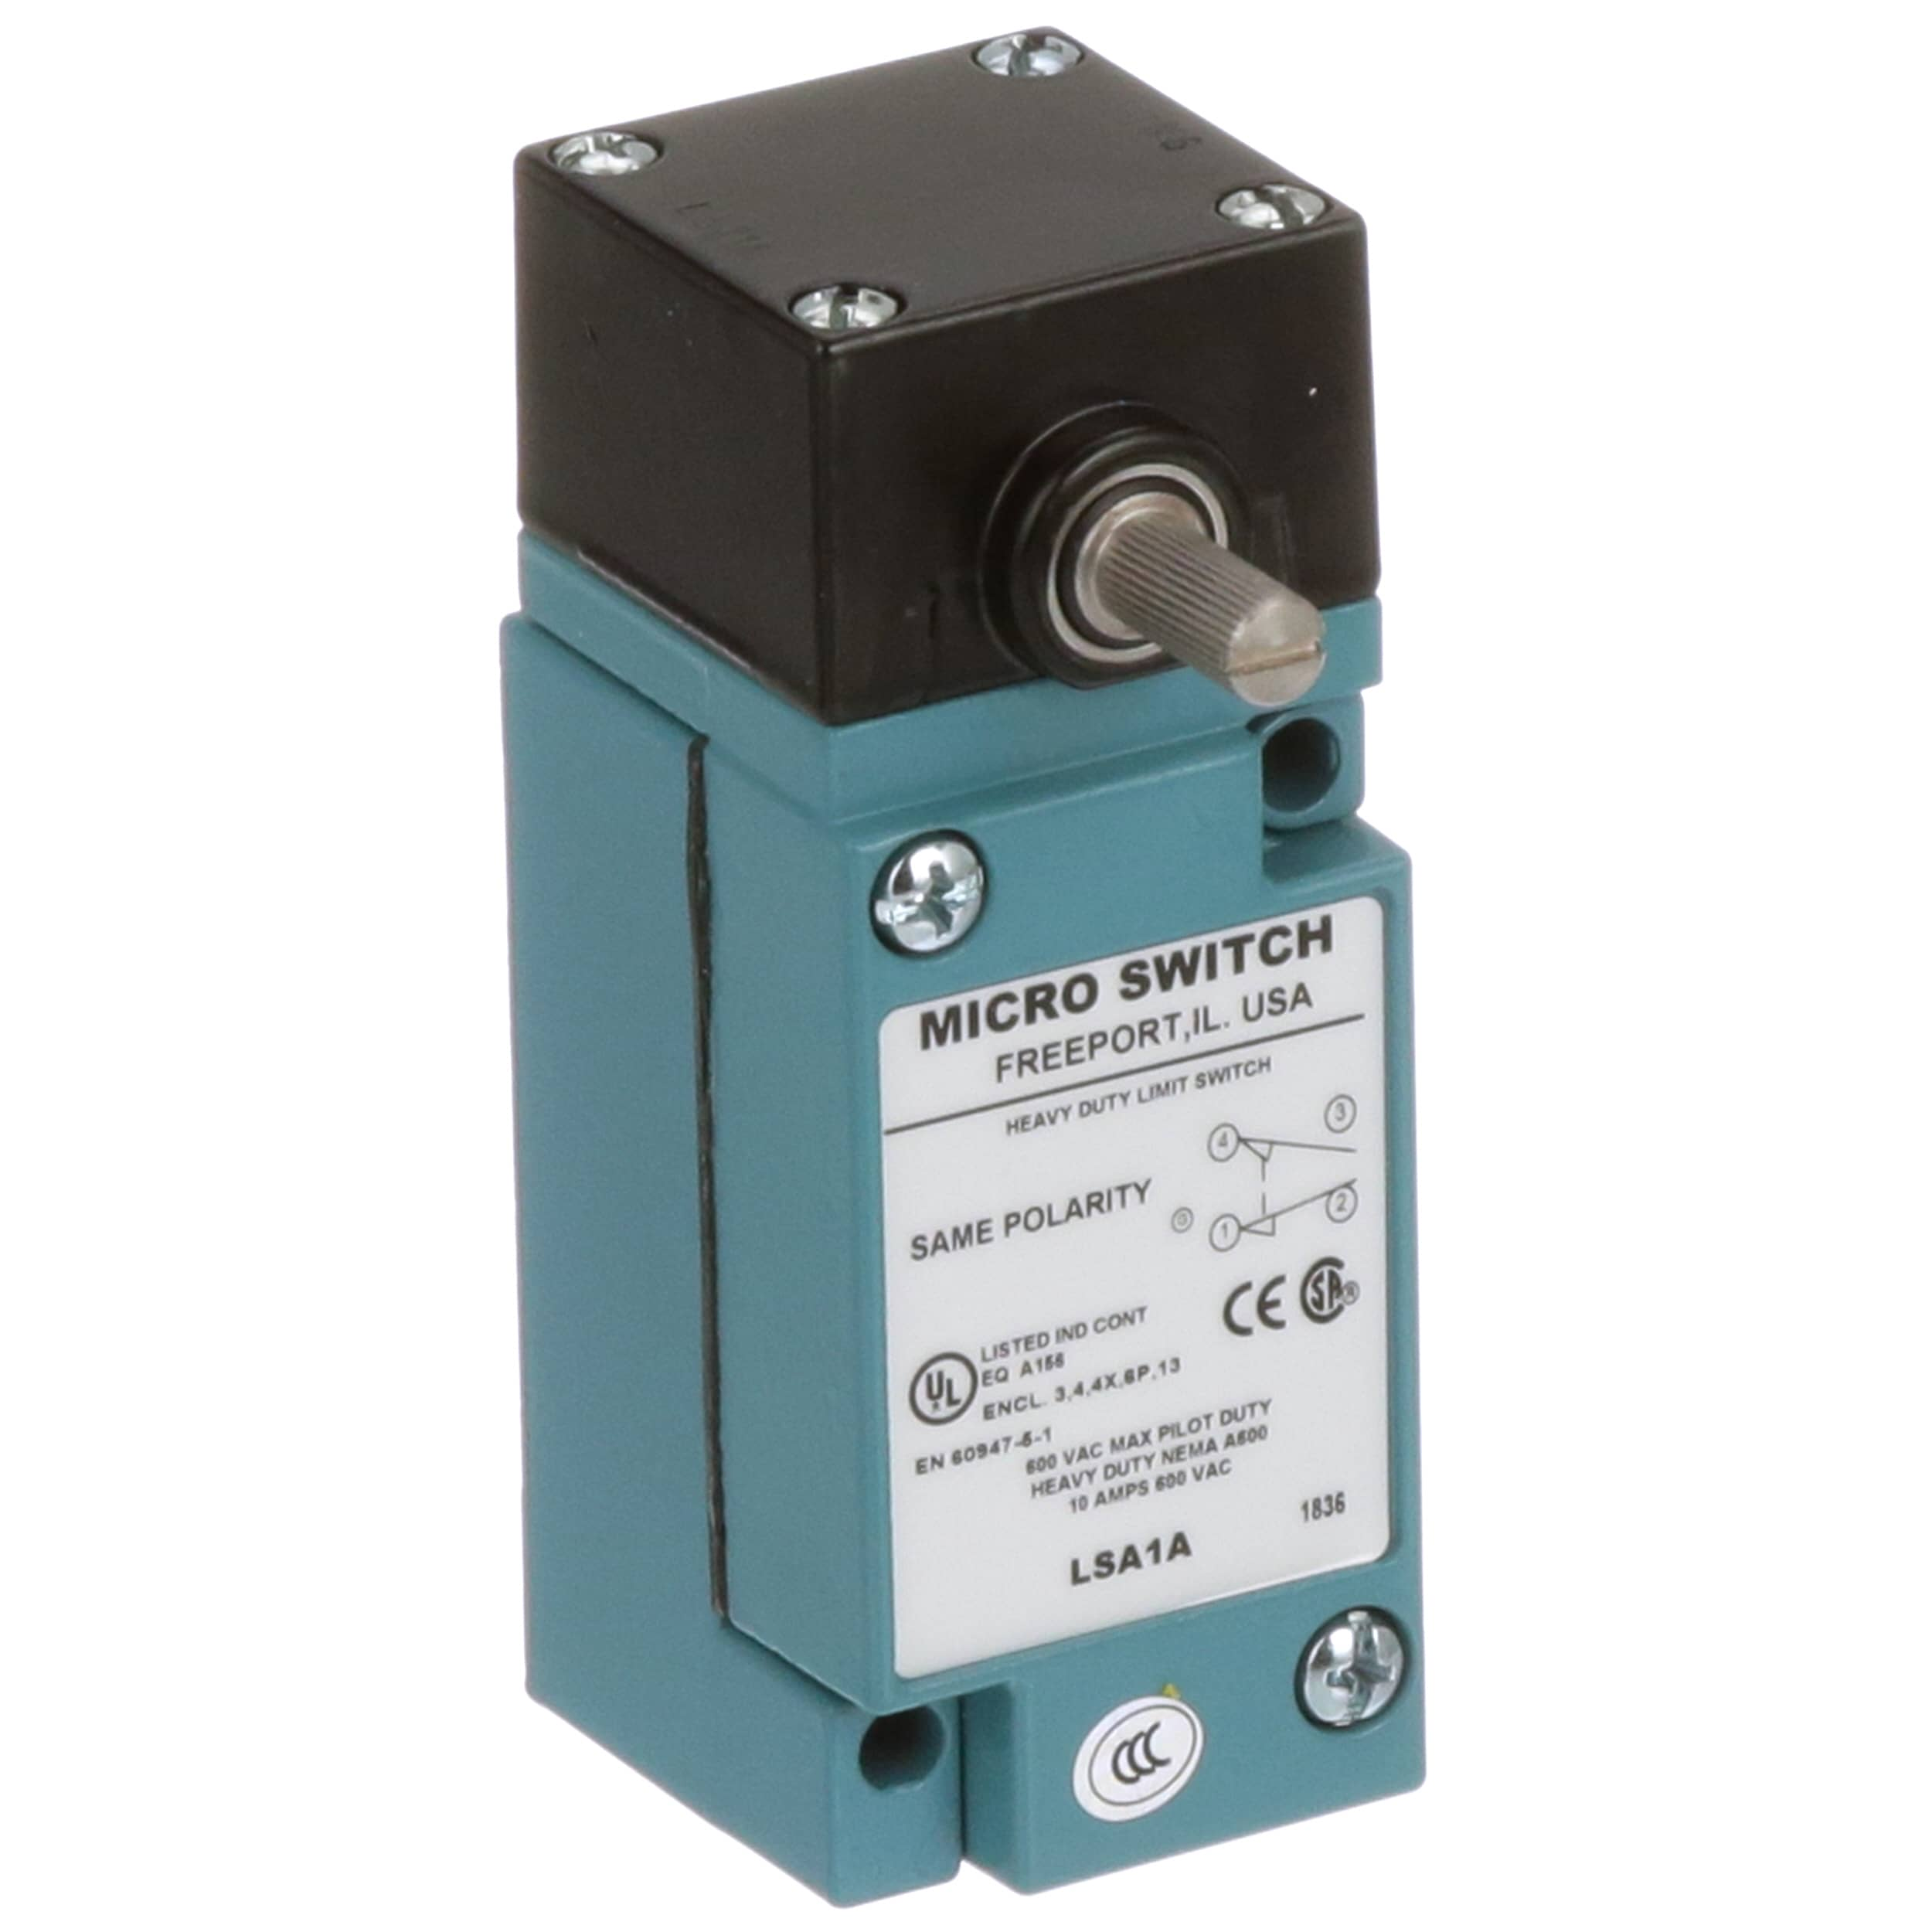 Honeywell Lsa1a Limit Switch Spdt 600vac 10a Siderotary Diagram Silver Contacts Hdls Series Allied Electronics Automation